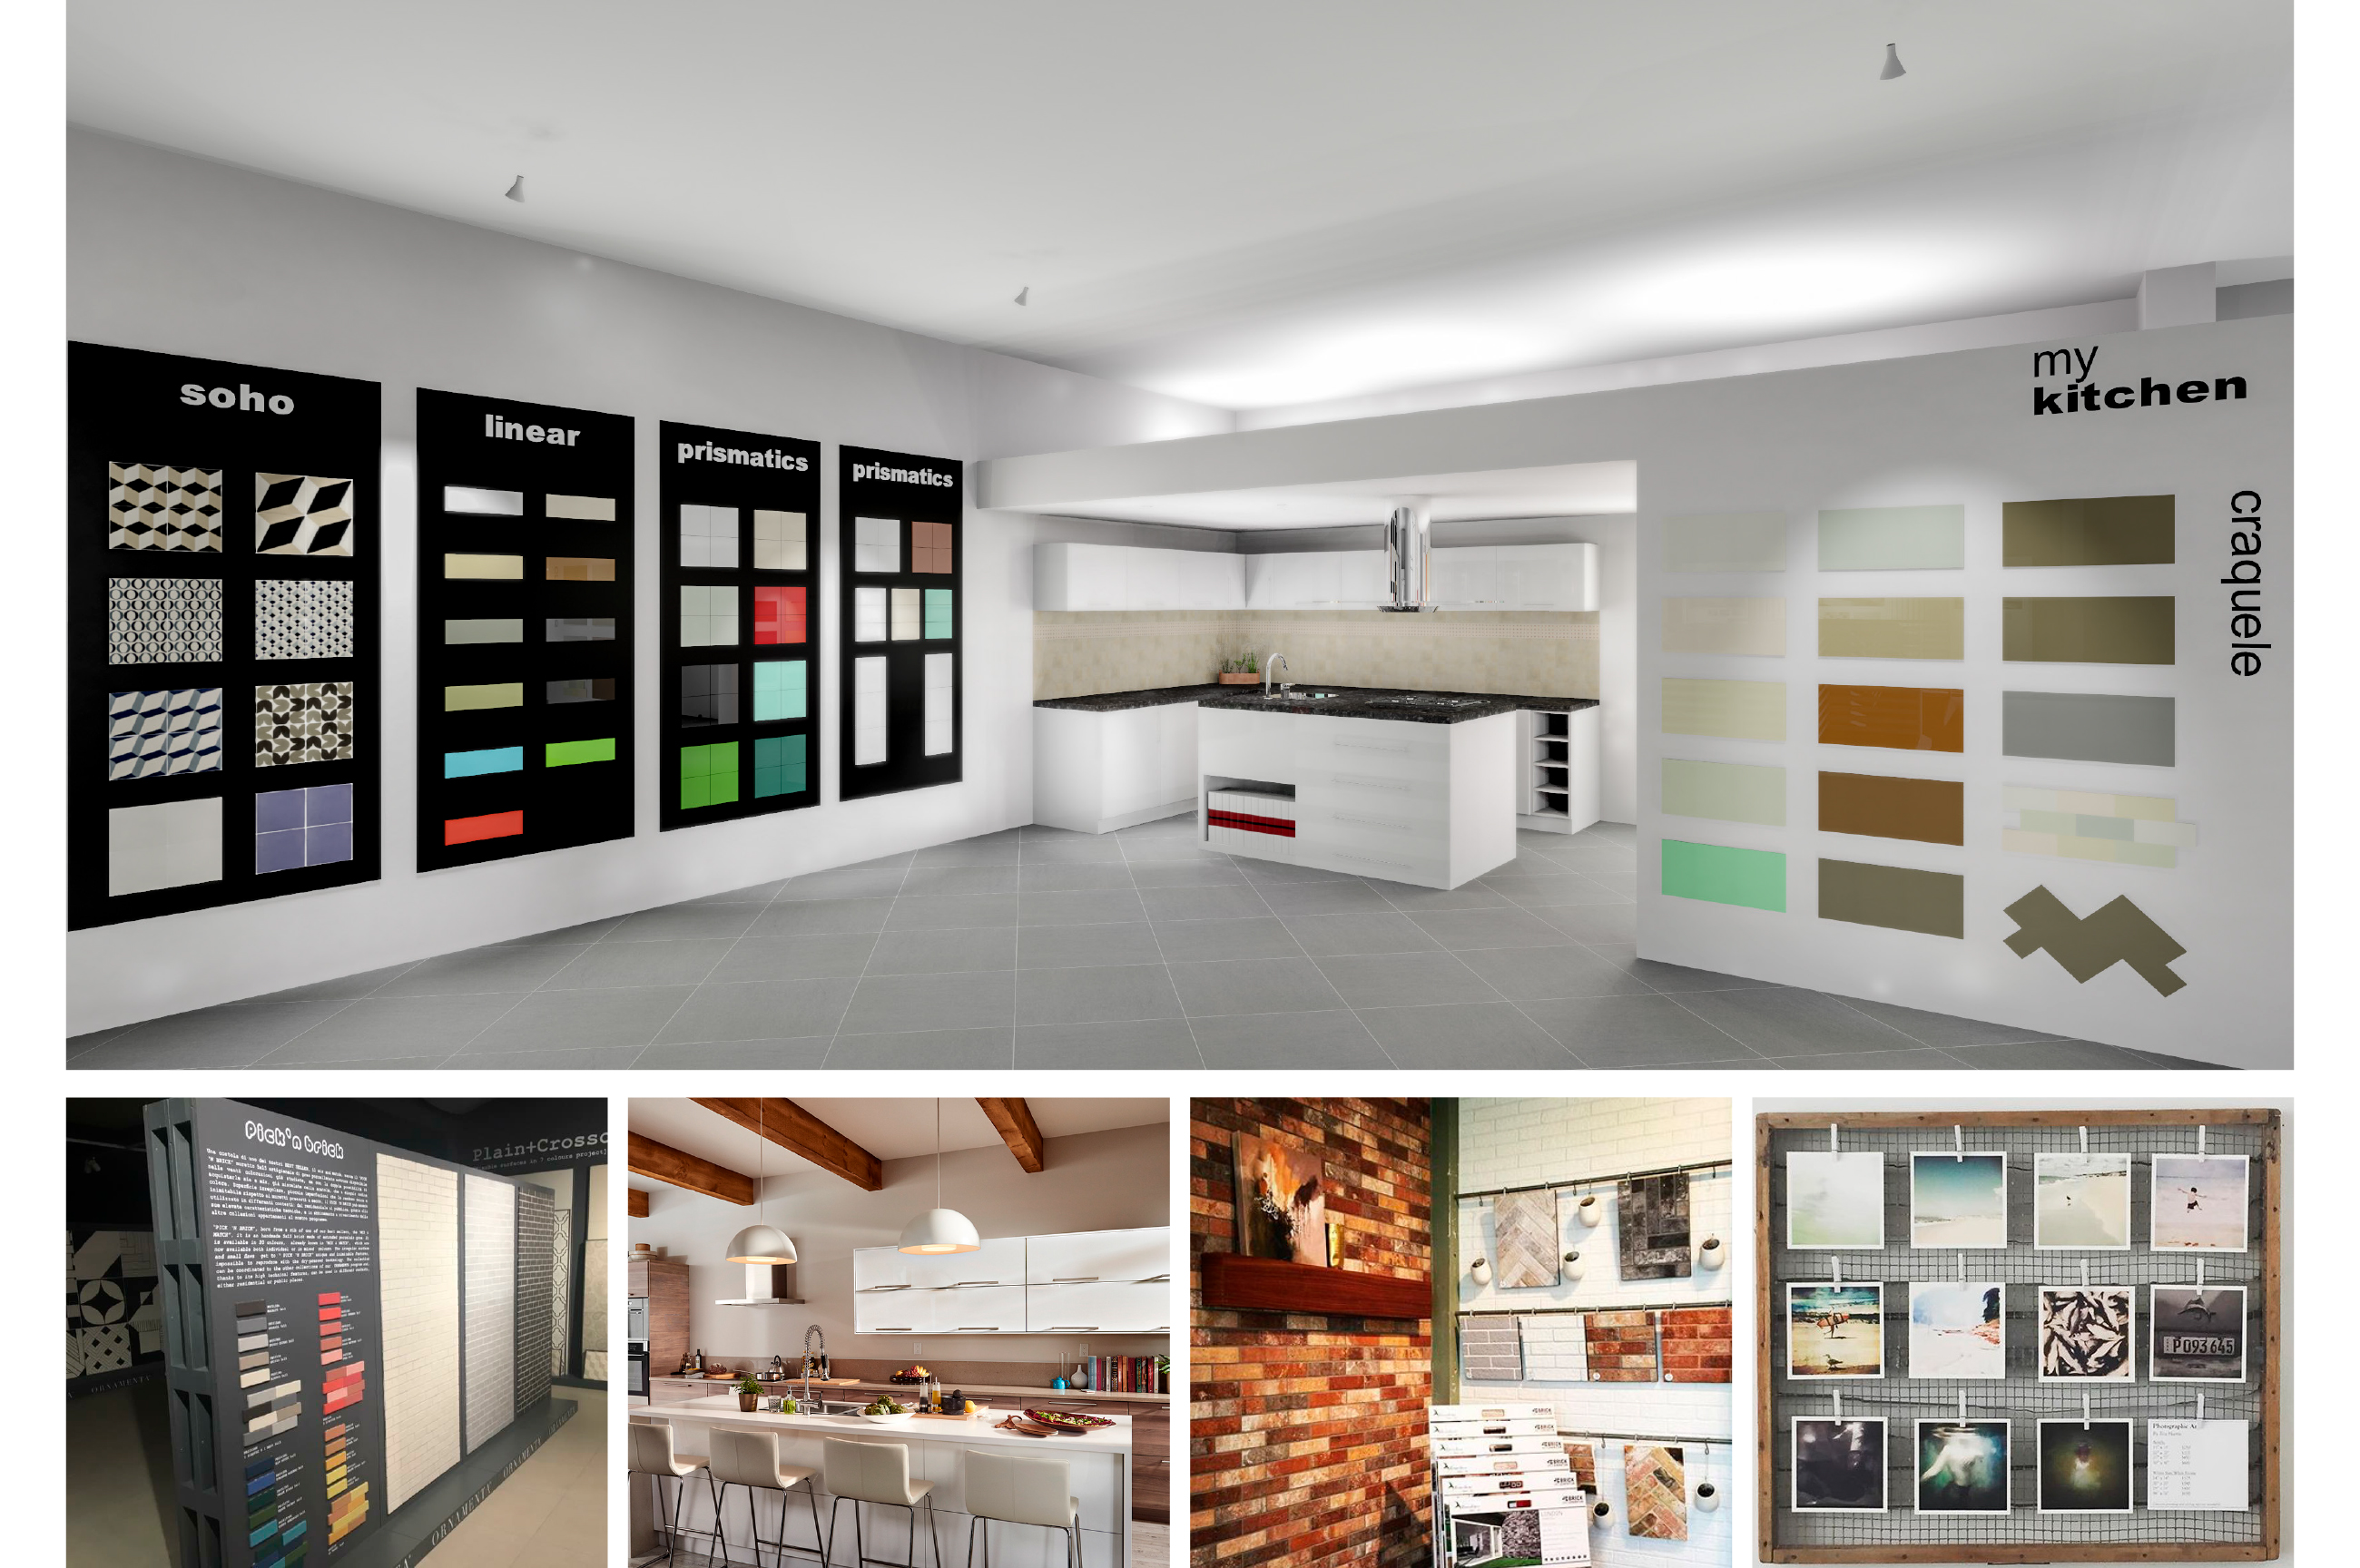 Tile Mountain showroom interior design - creative kitchen tiles display